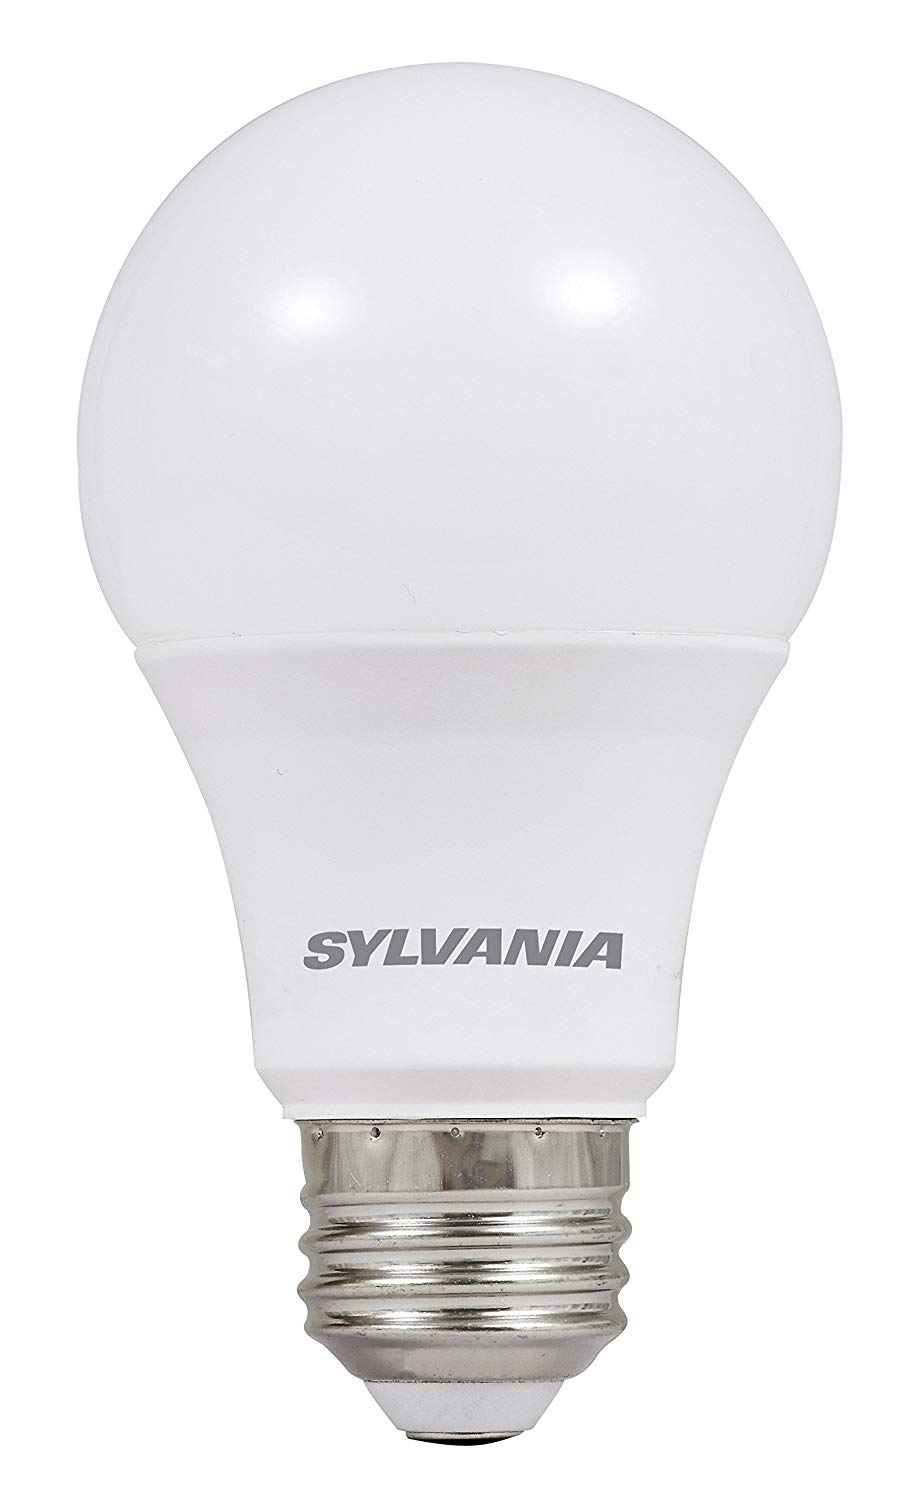 SYLVANIA 74766 60W Equivalent, LED Light Bulb, A19 Lamp, Efficient 8.5W, Bright White 5000K, 24 Pack, Piece